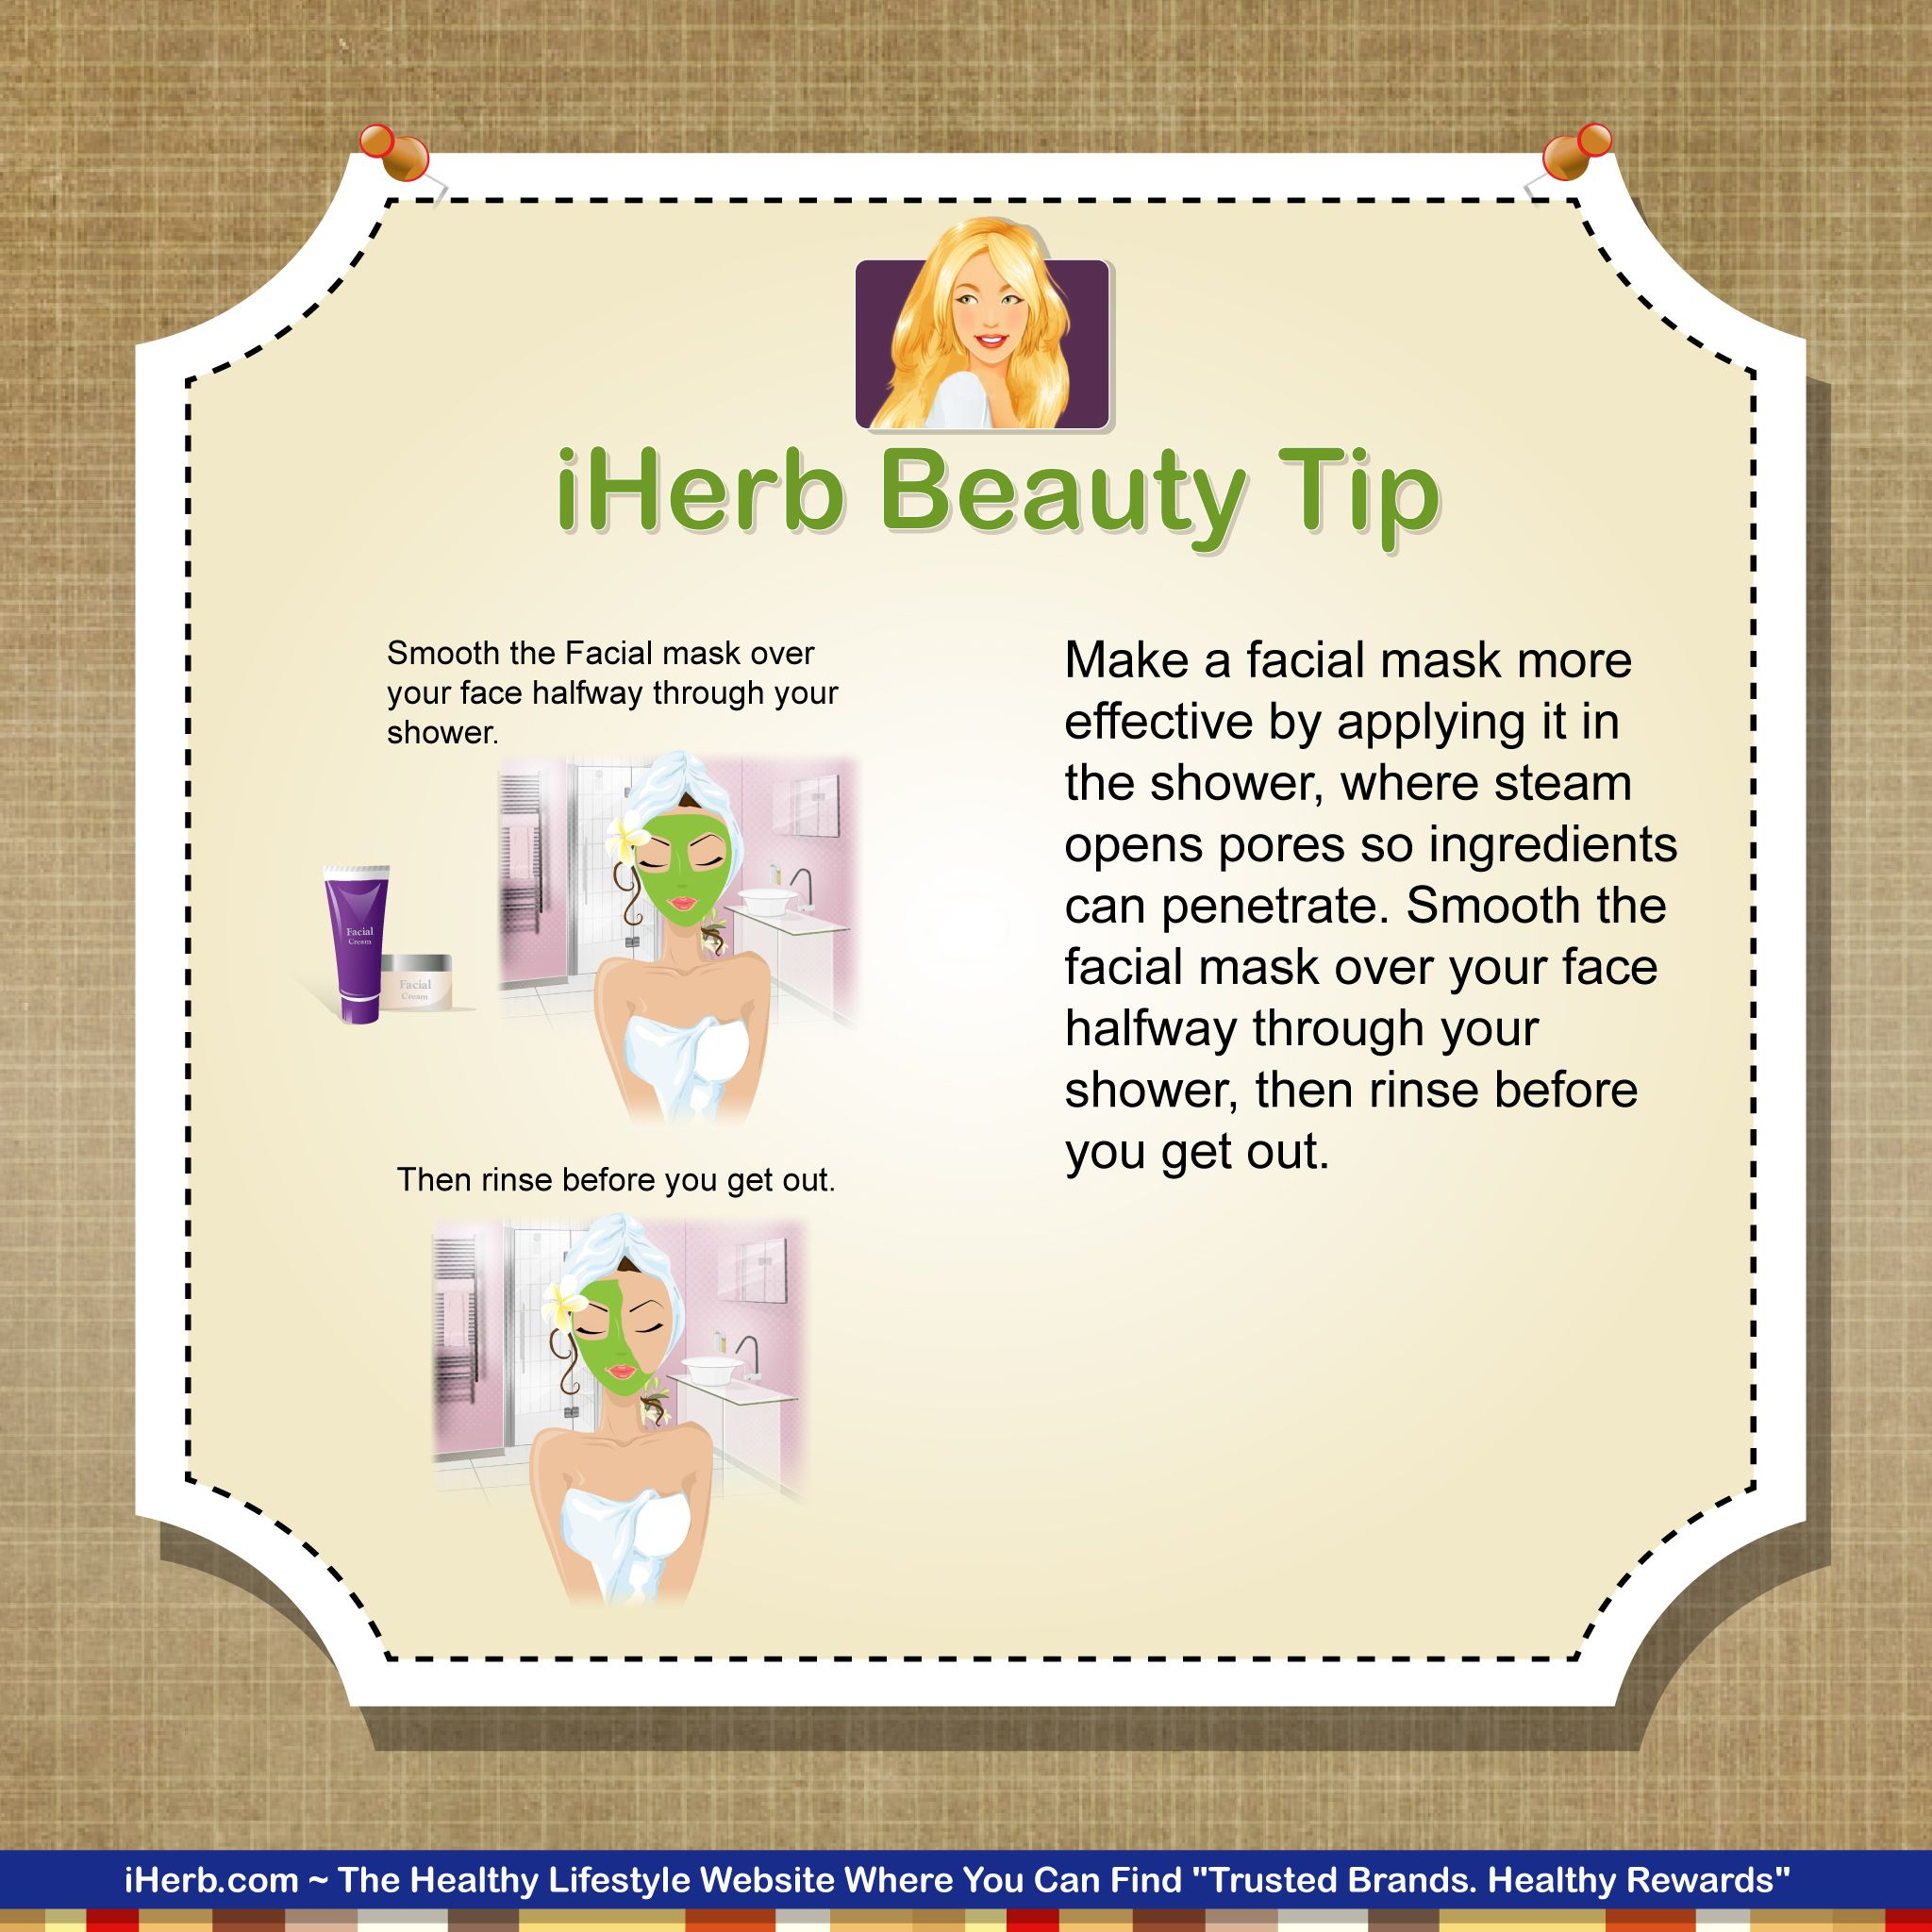 iHerb Beauty Tip:  One way to make your facial mask more effective is to put it on in the shower.